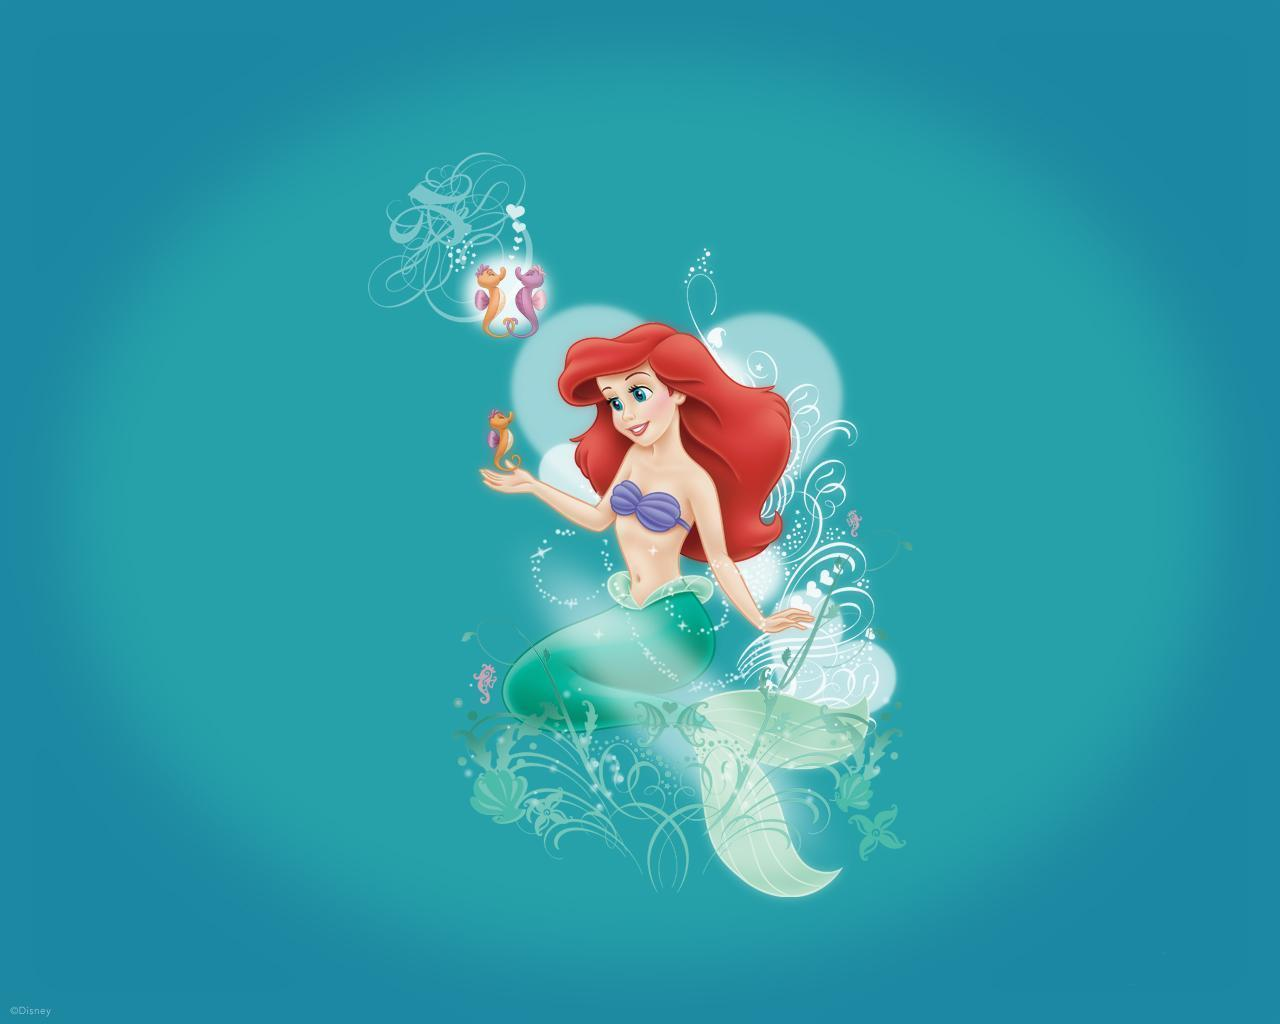 the little mermaid the little mermaid wallpaper